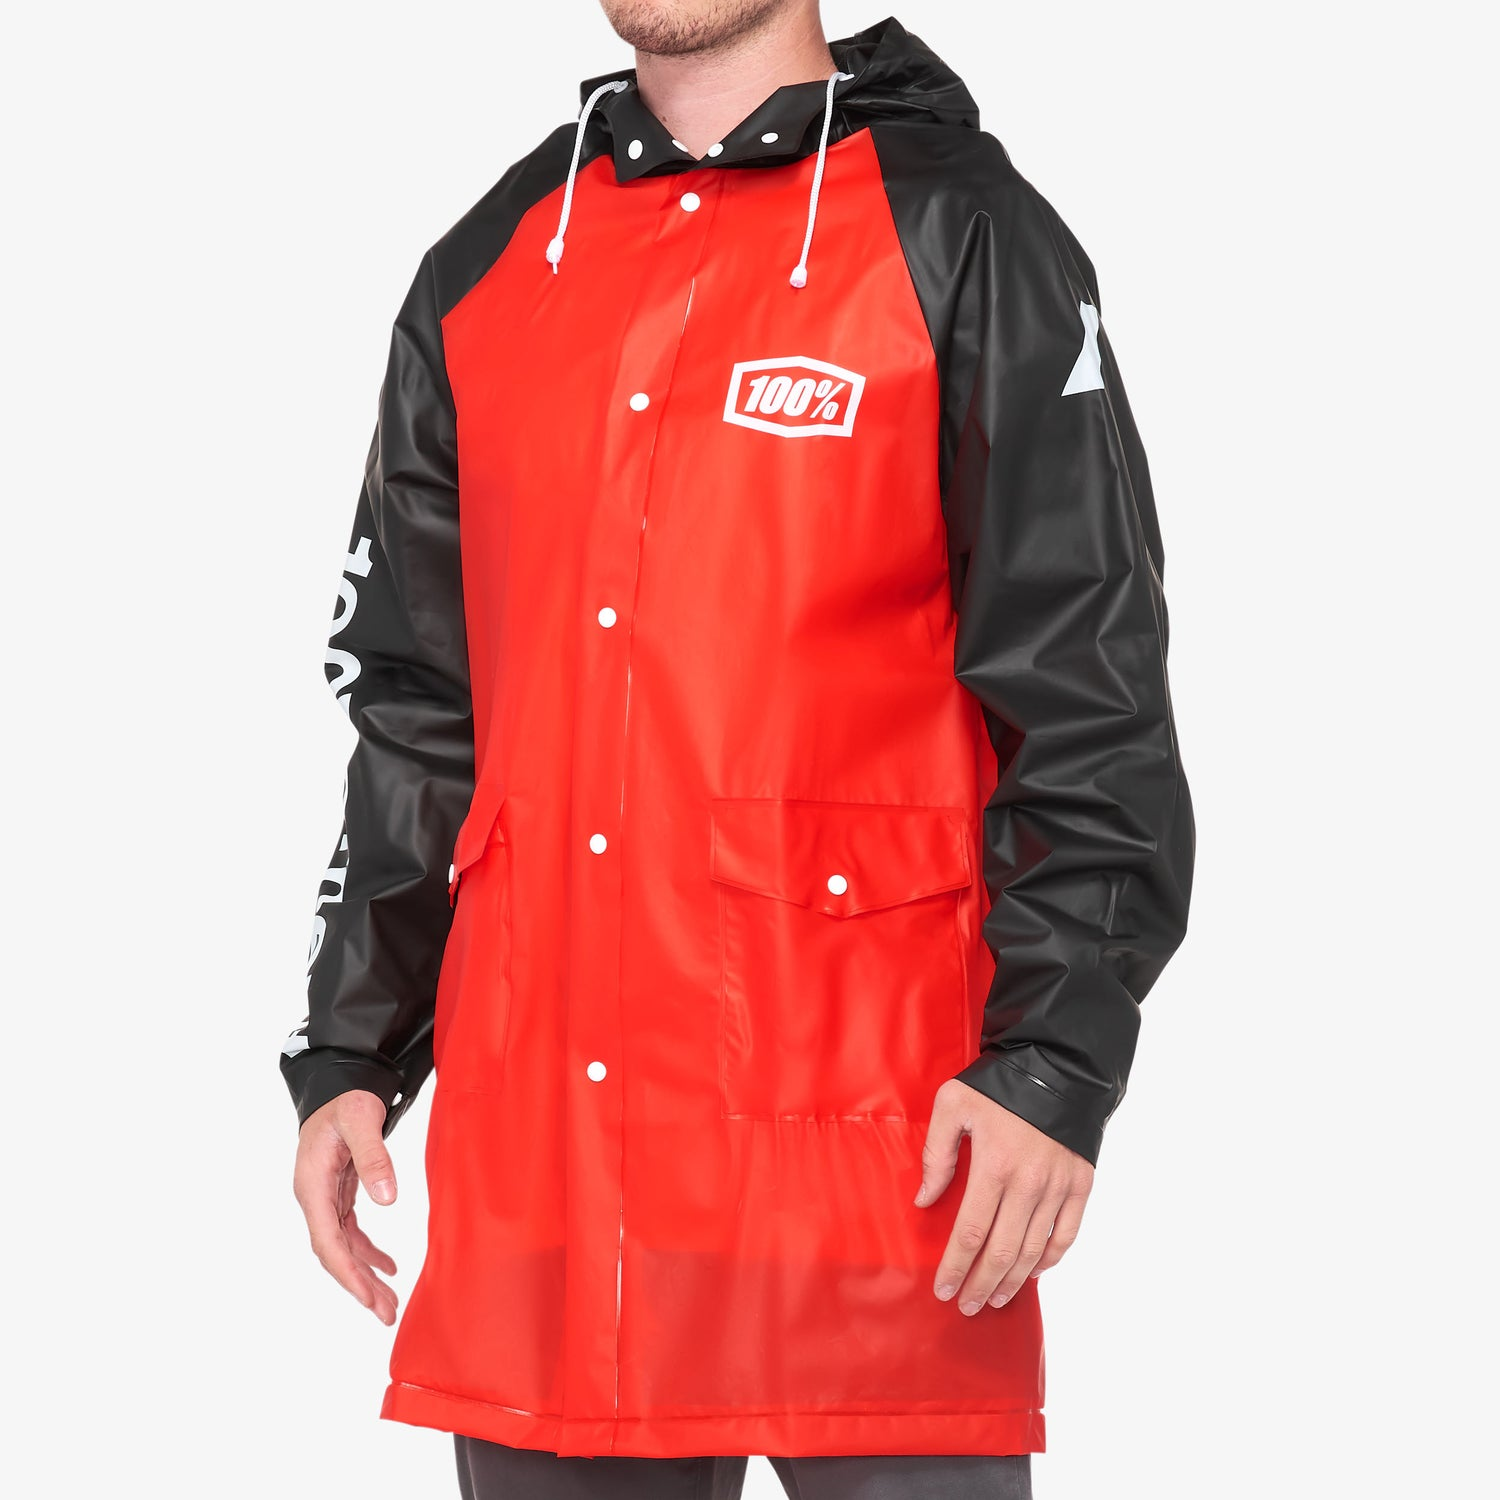 TORRENT Mechanic's Raincoat Red/Black